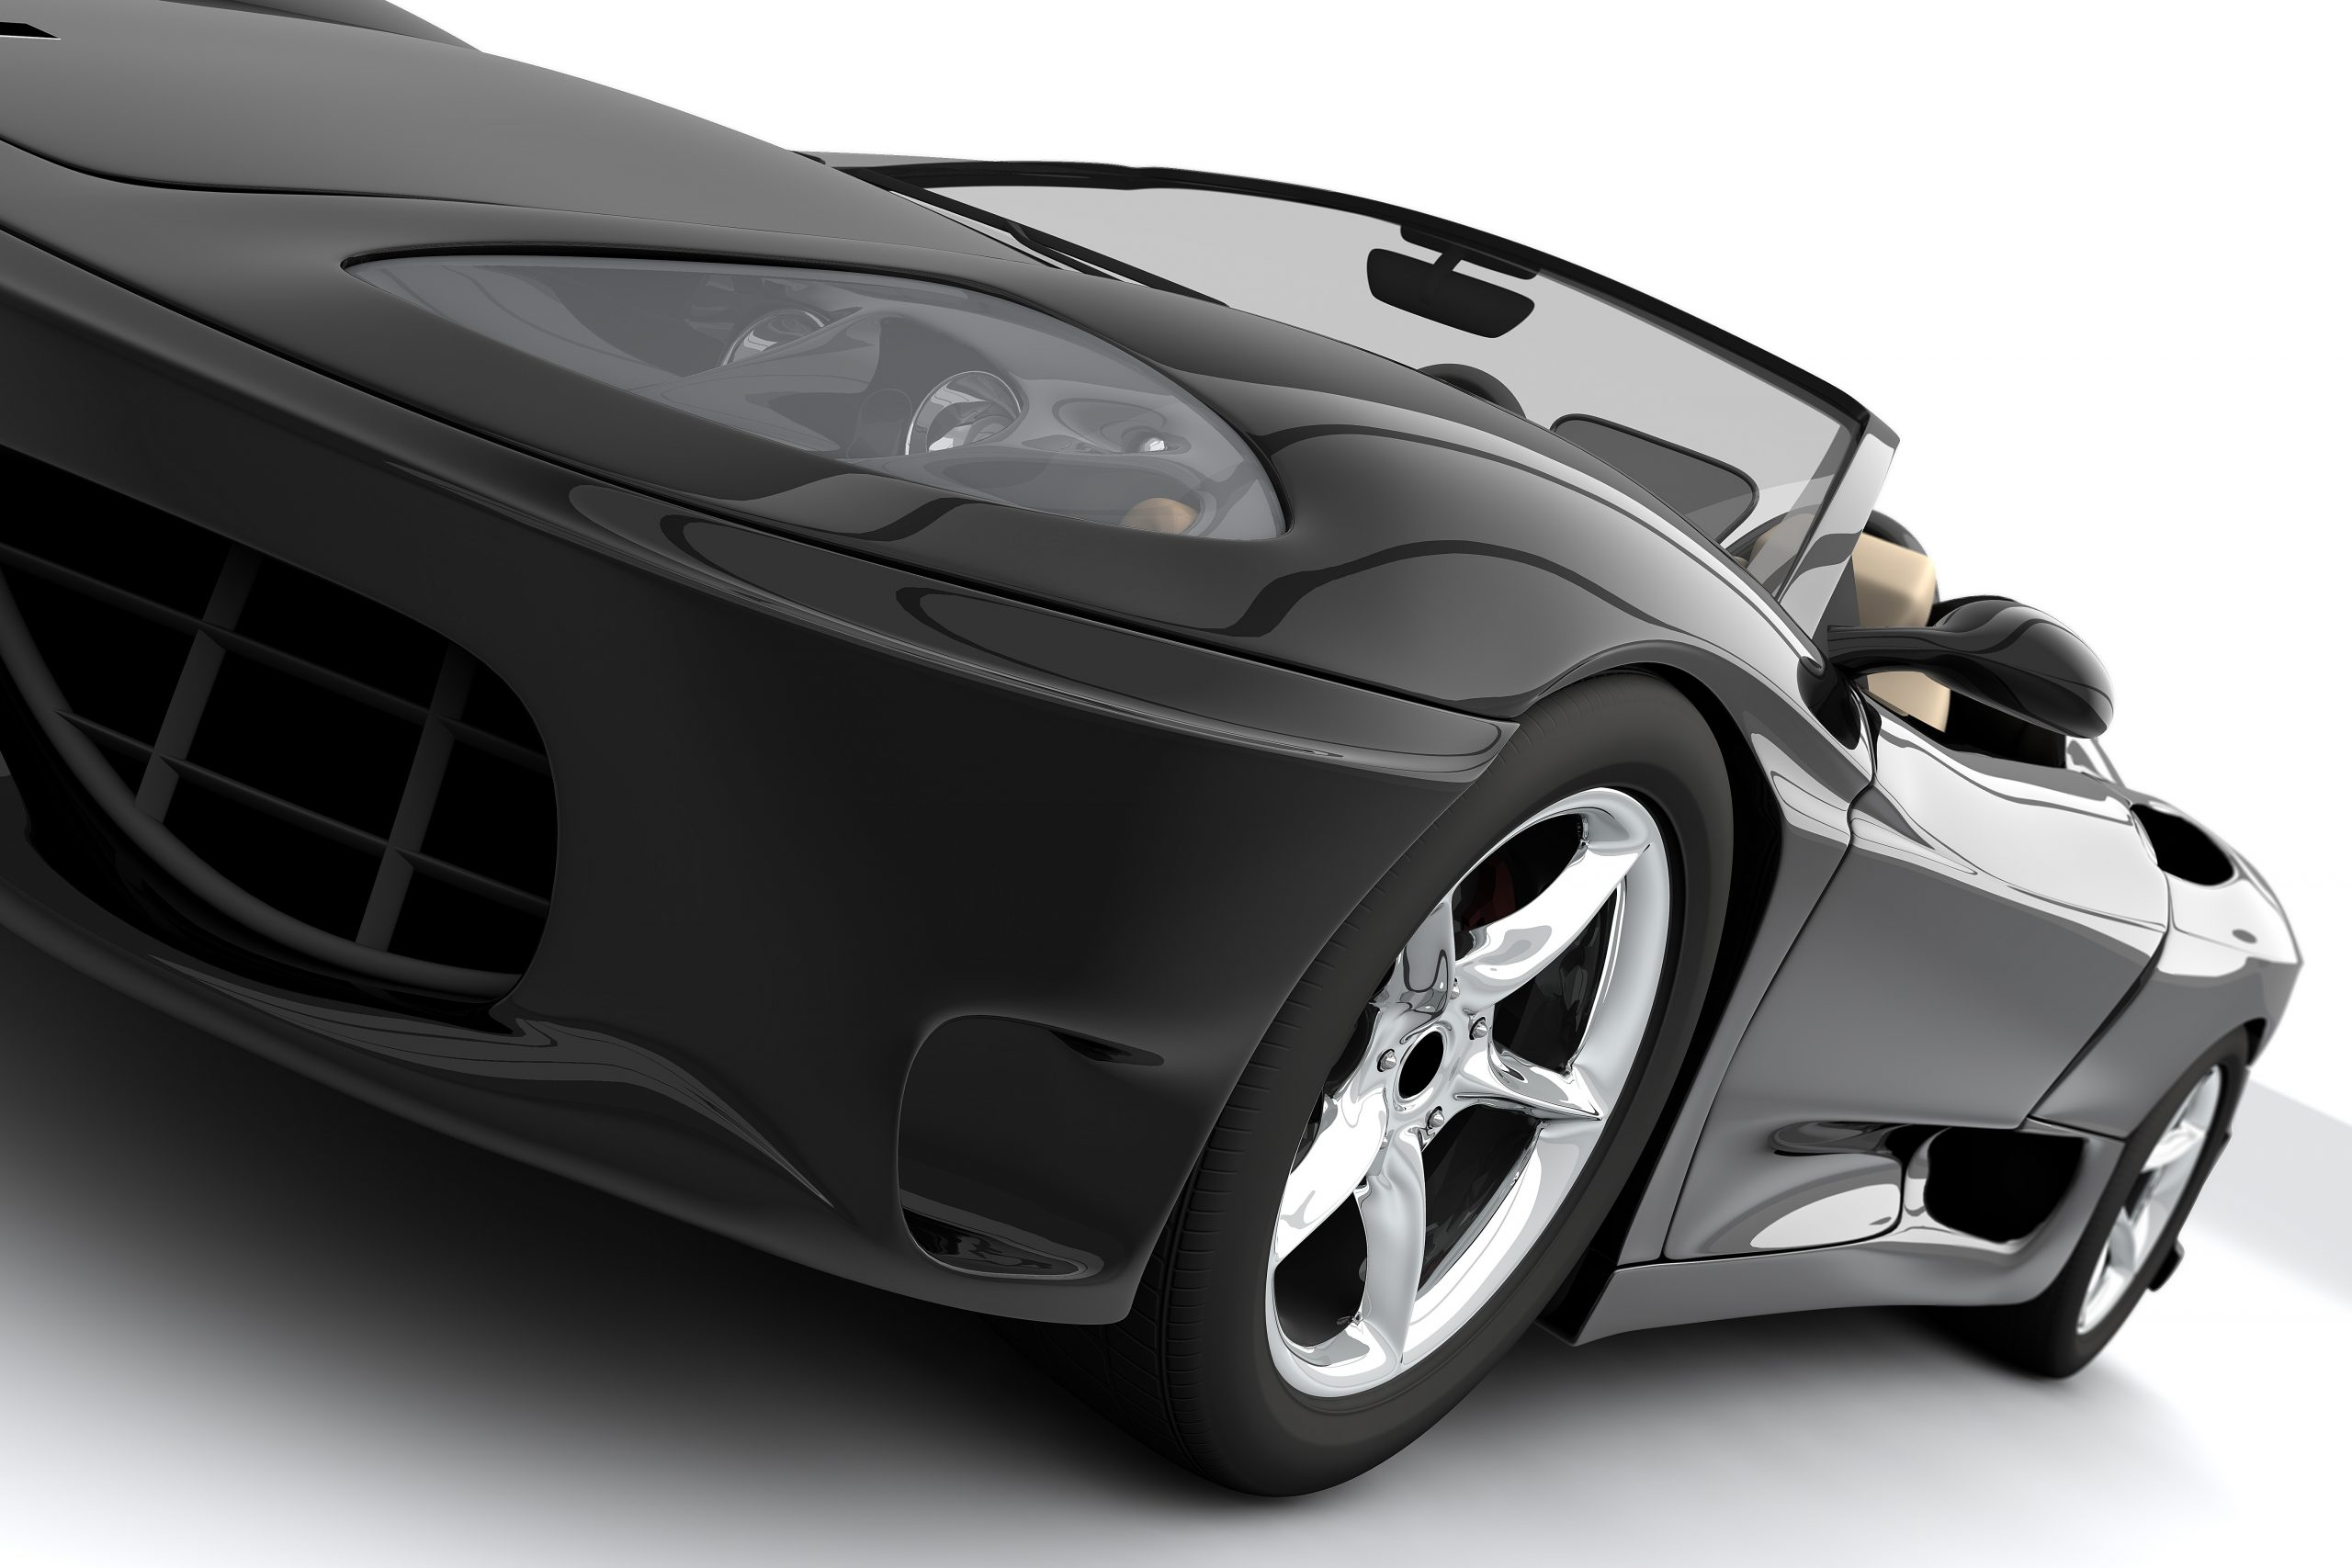 Things To Know Before Starting An Automotive Business